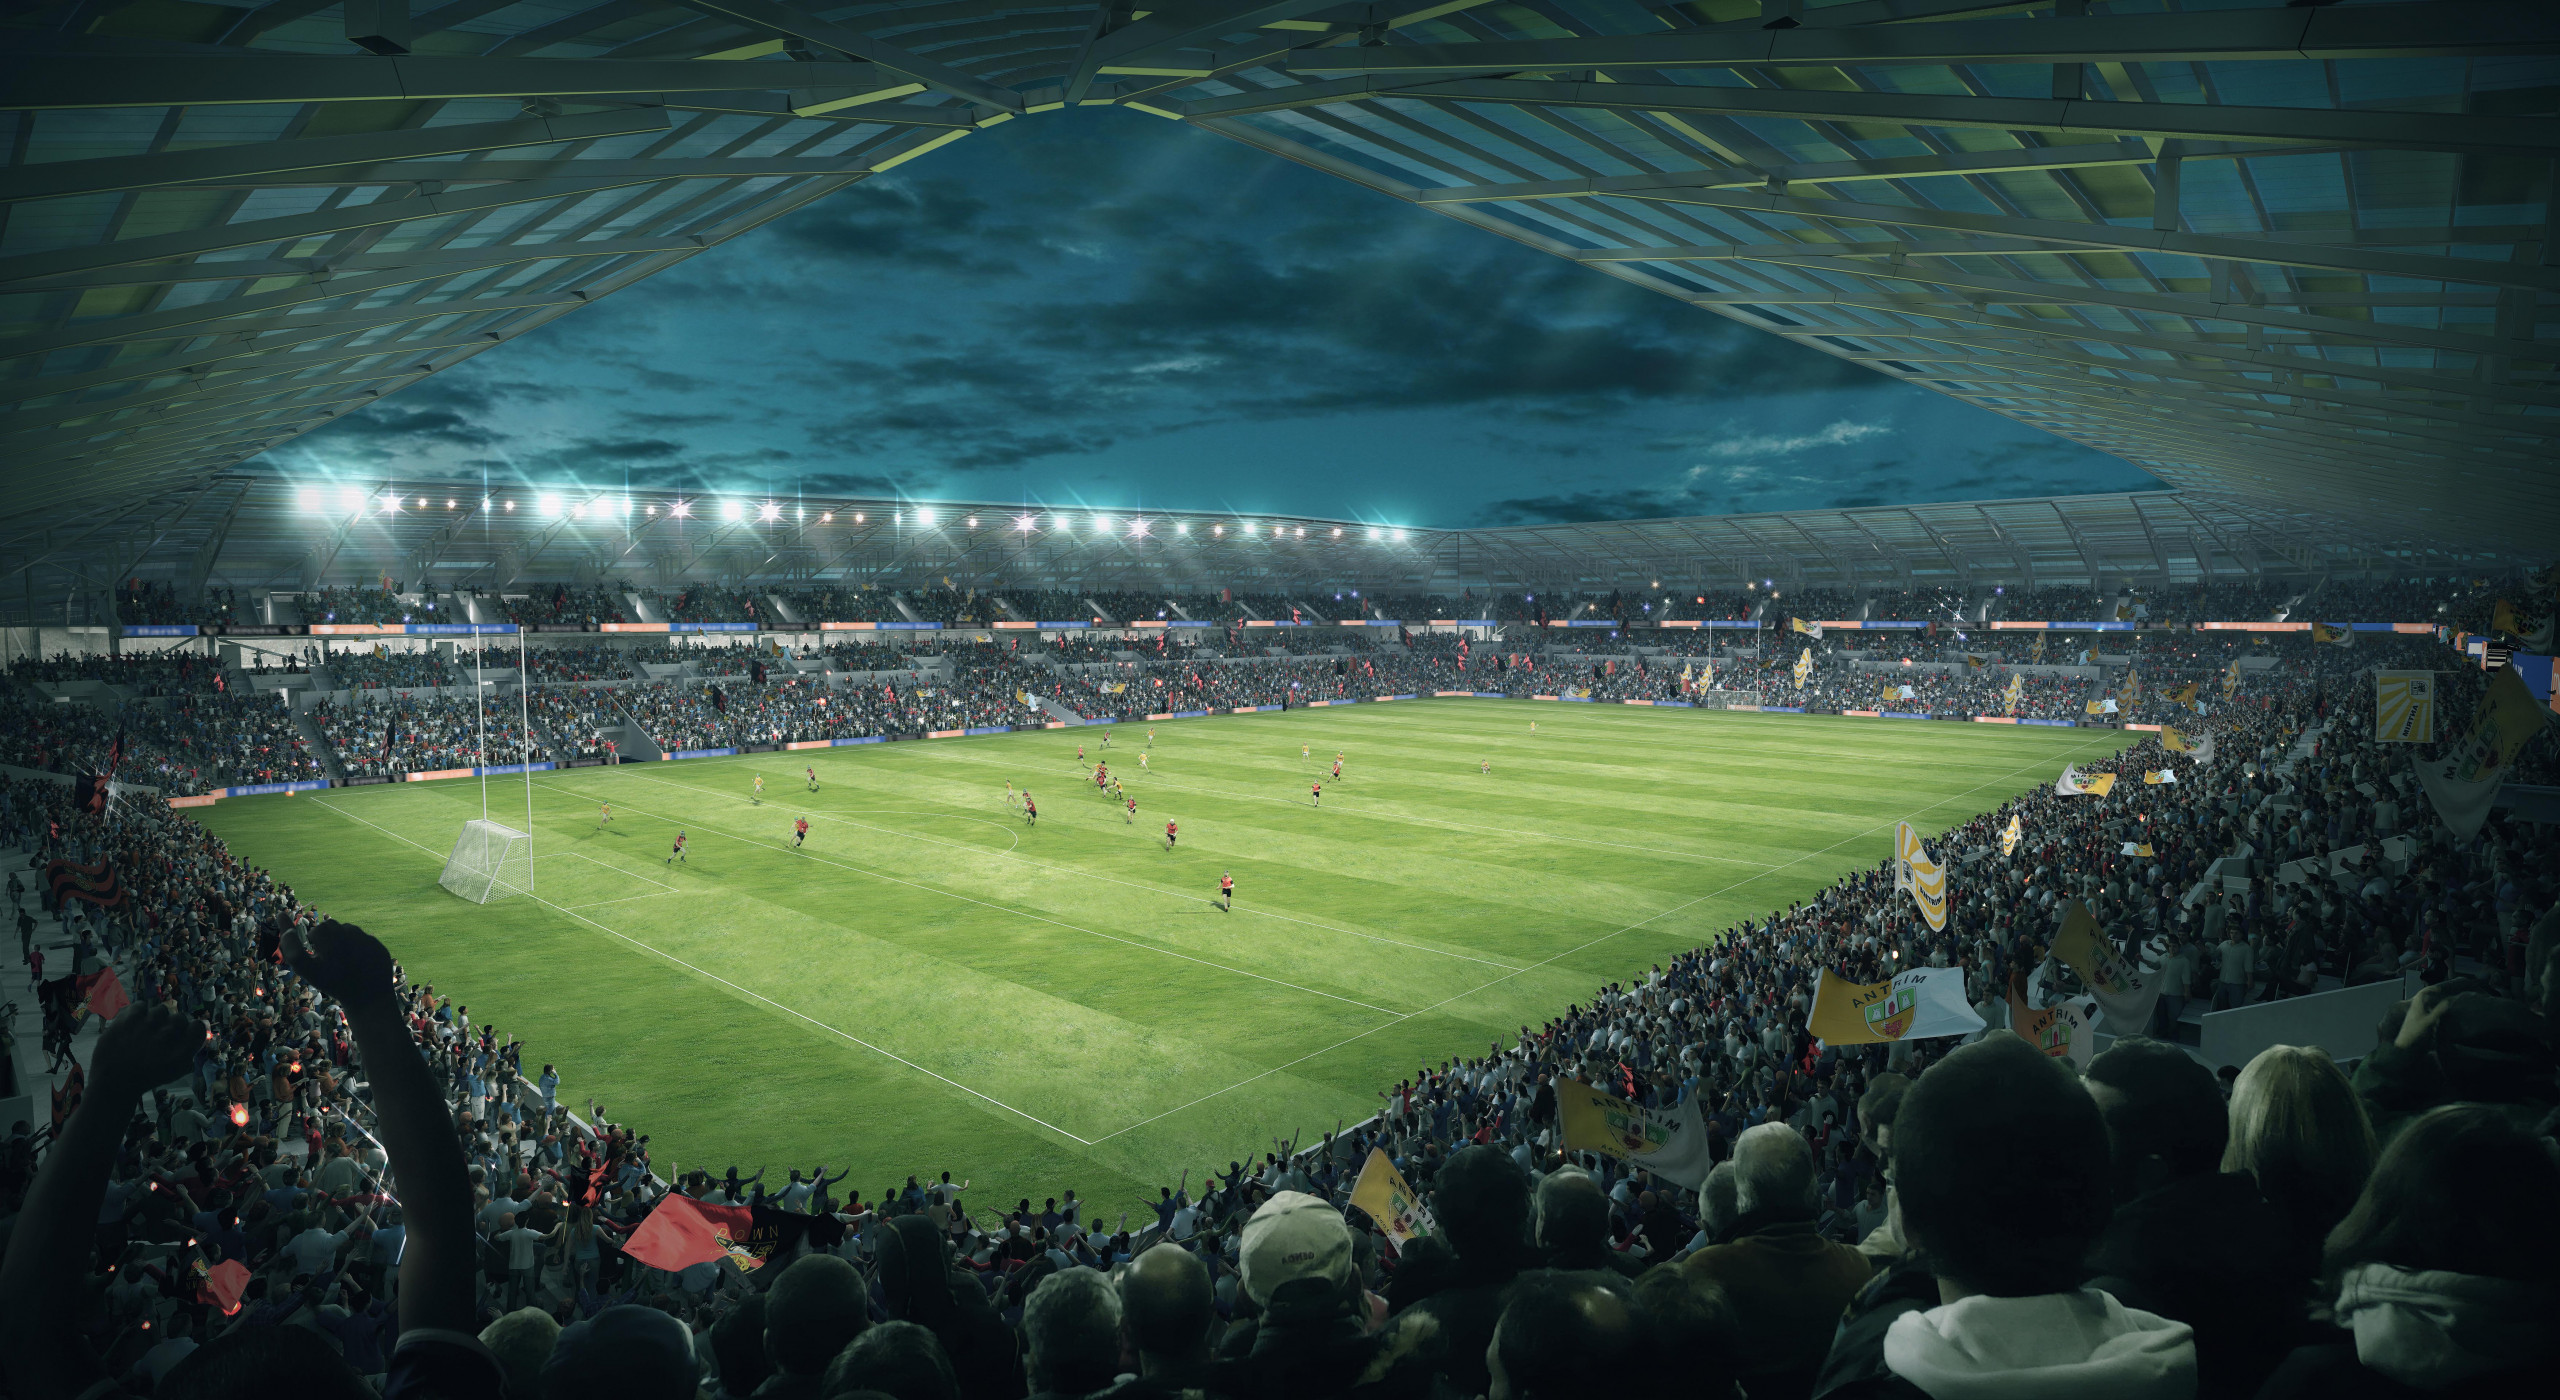 Momentous occasion for Gaels following Casement Park planning confirmation